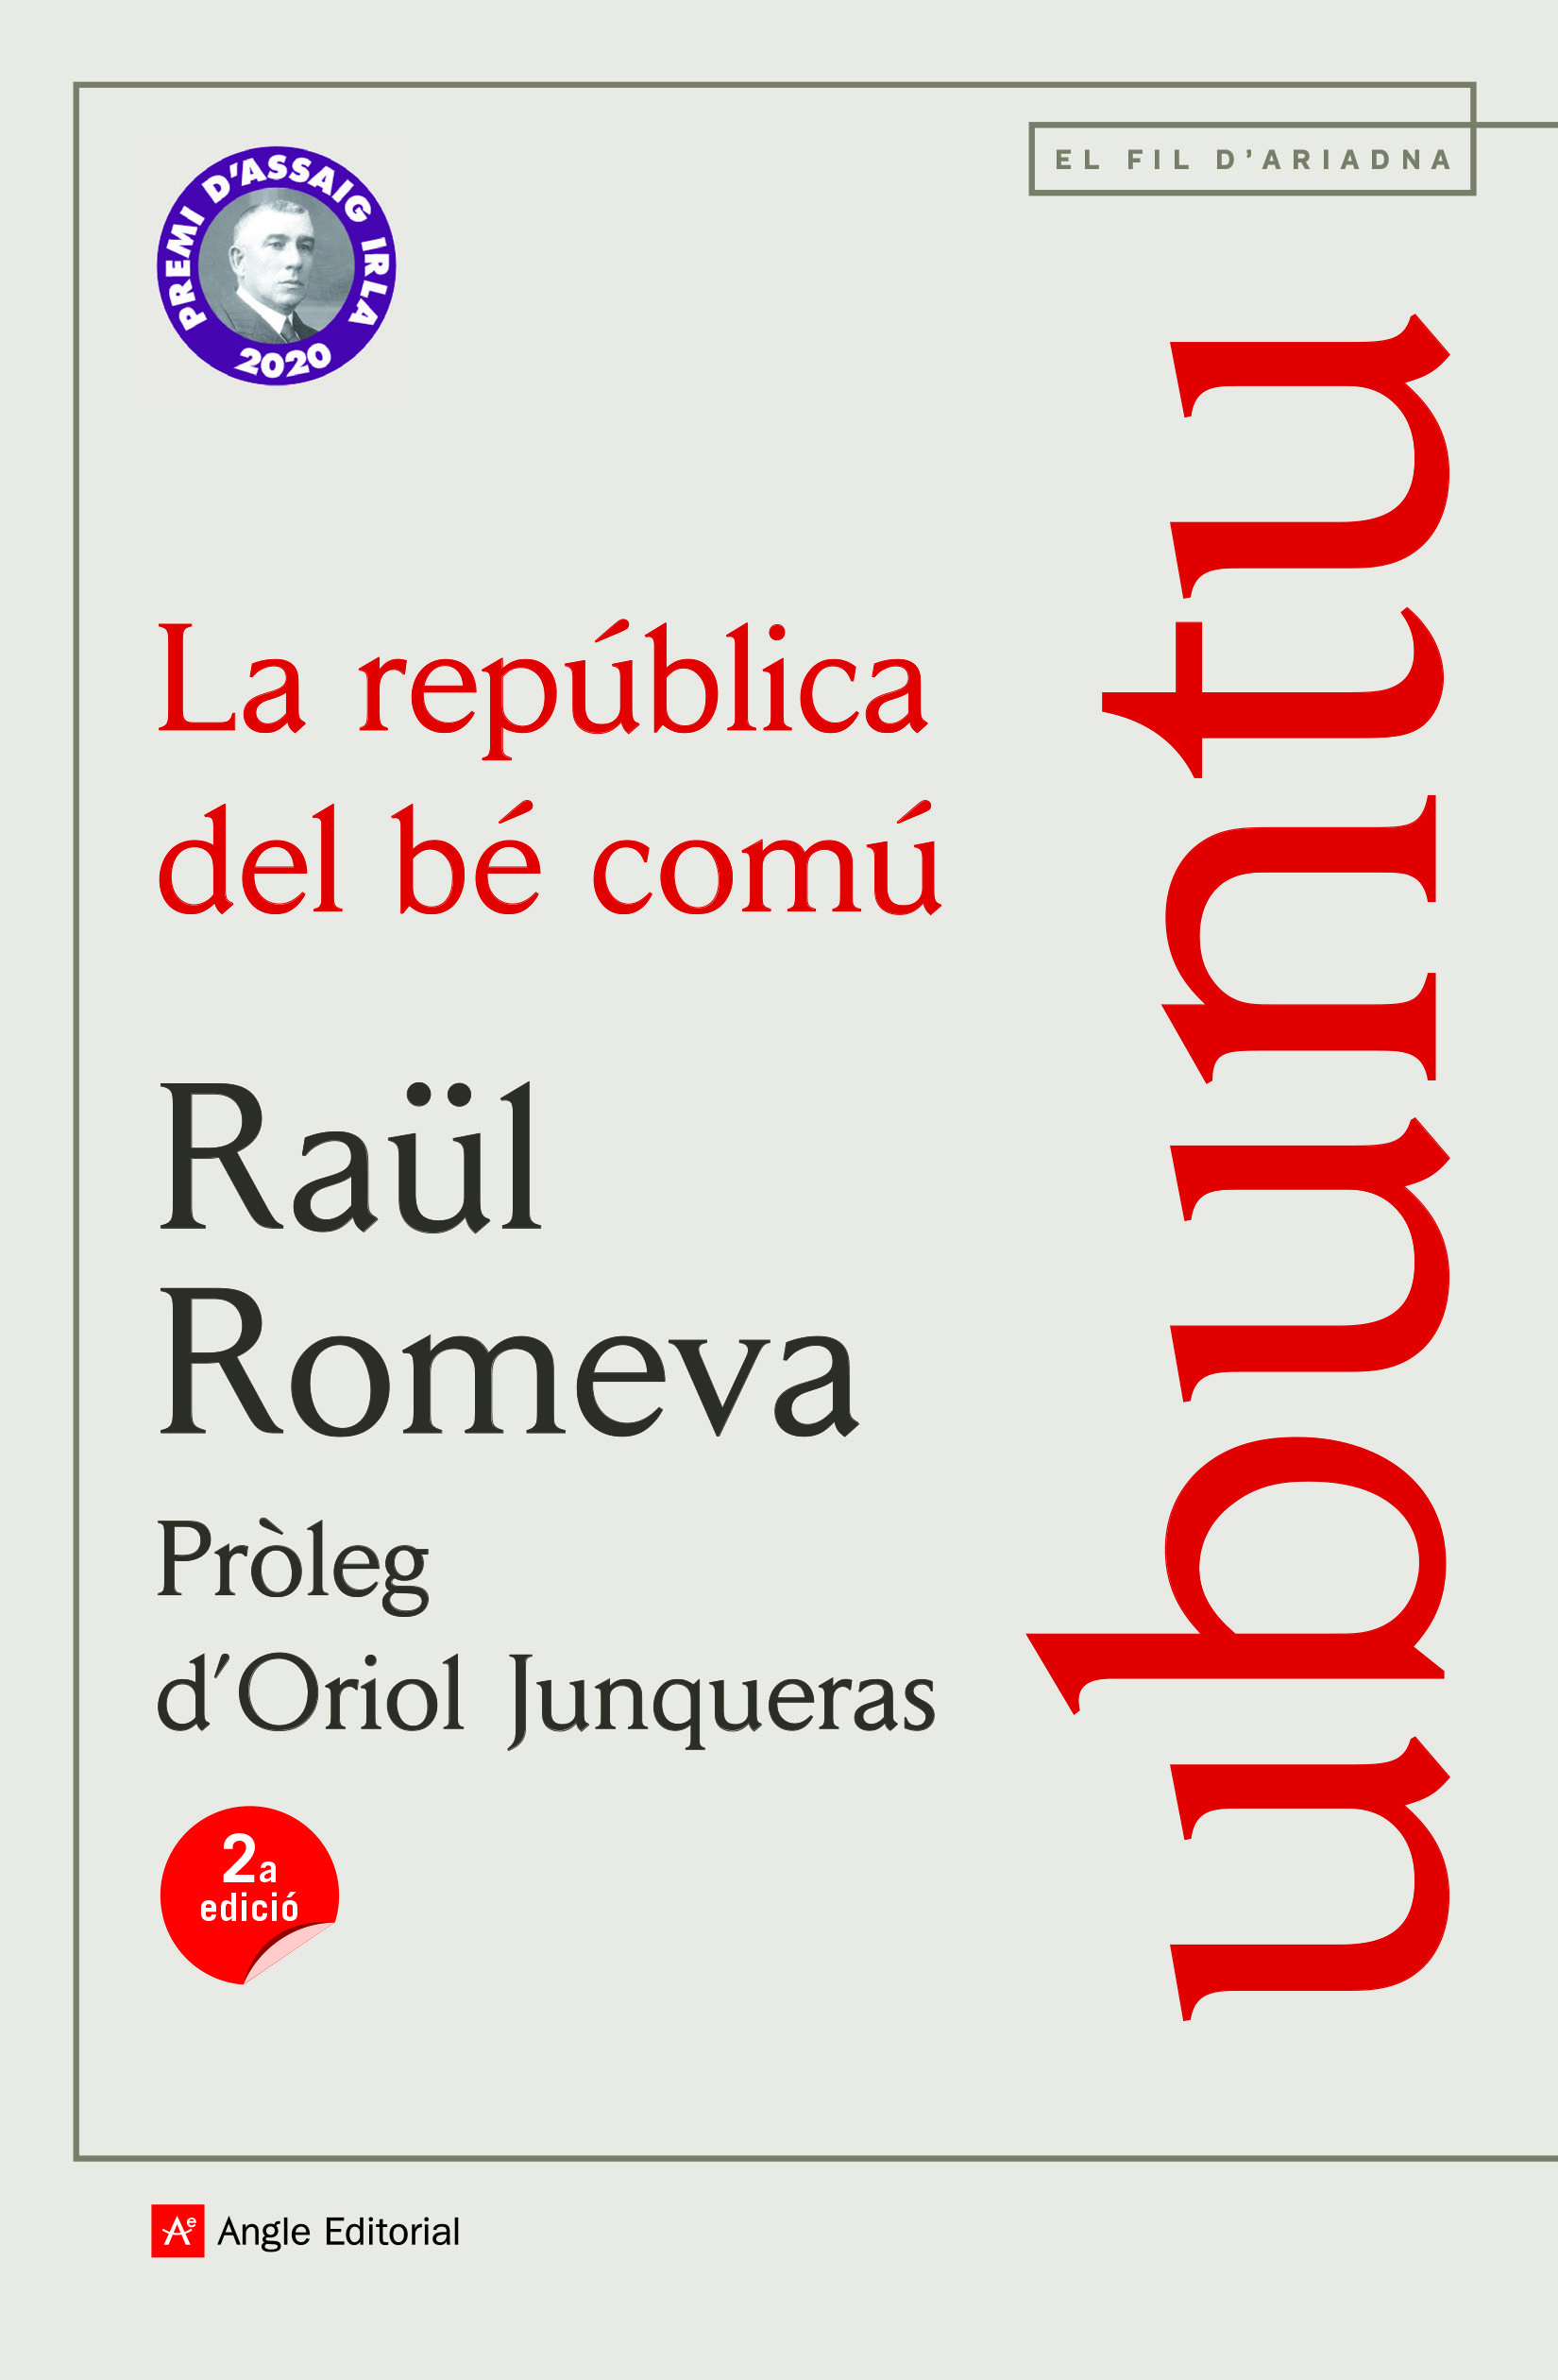 UBUNTU LA REPUBLICA DEL BE COMU